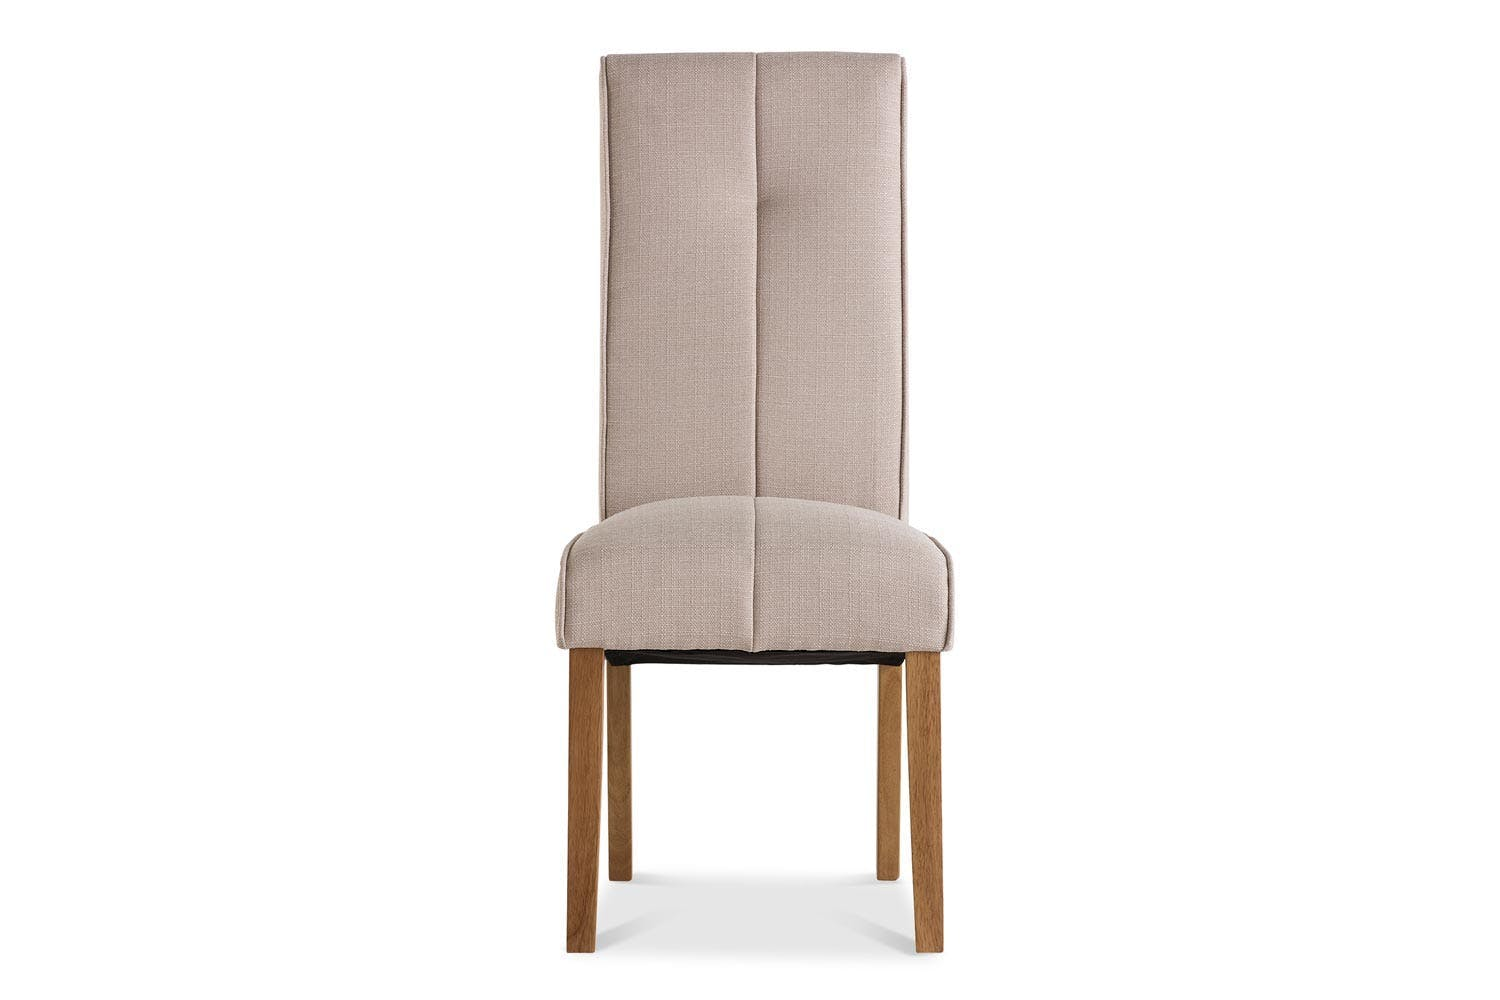 Admirable Dining Chairs Harvey Norman Ireland Machost Co Dining Chair Design Ideas Machostcouk